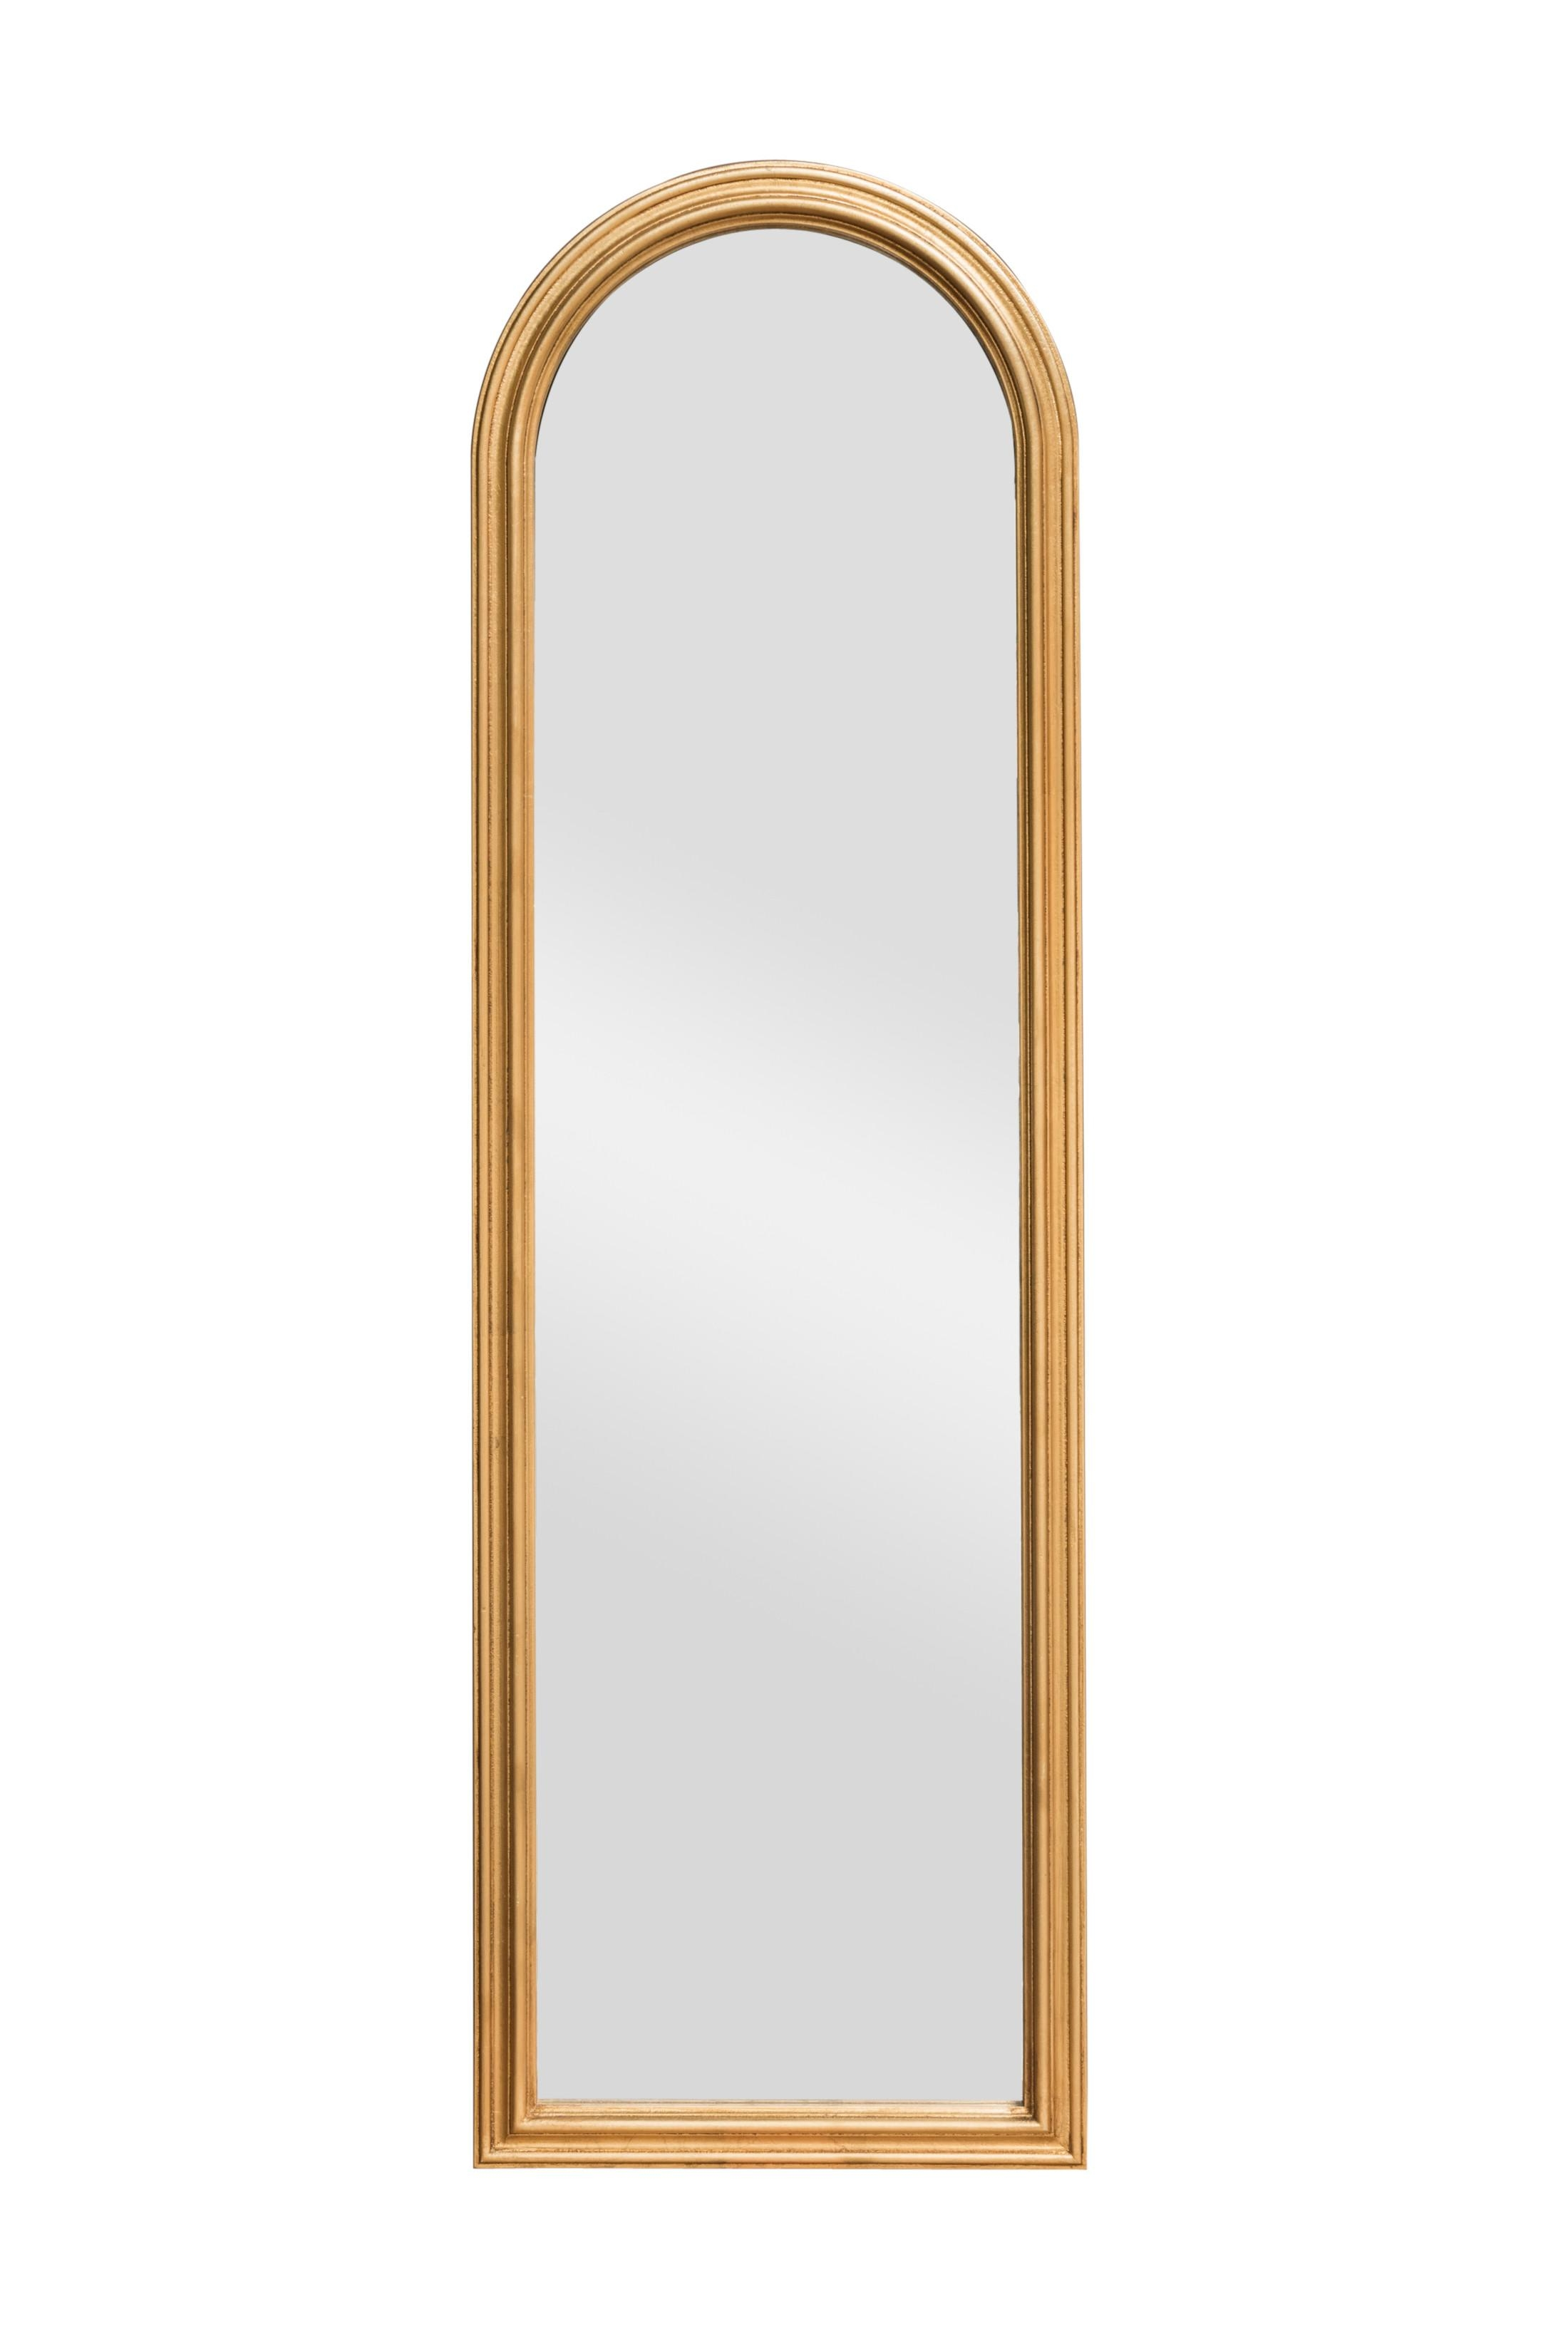 Buy Petite Mirror Gold Leaf At Discounted Price – Panfili Mirrors Throughout Gold Arch Mirror (View 17 of 20)